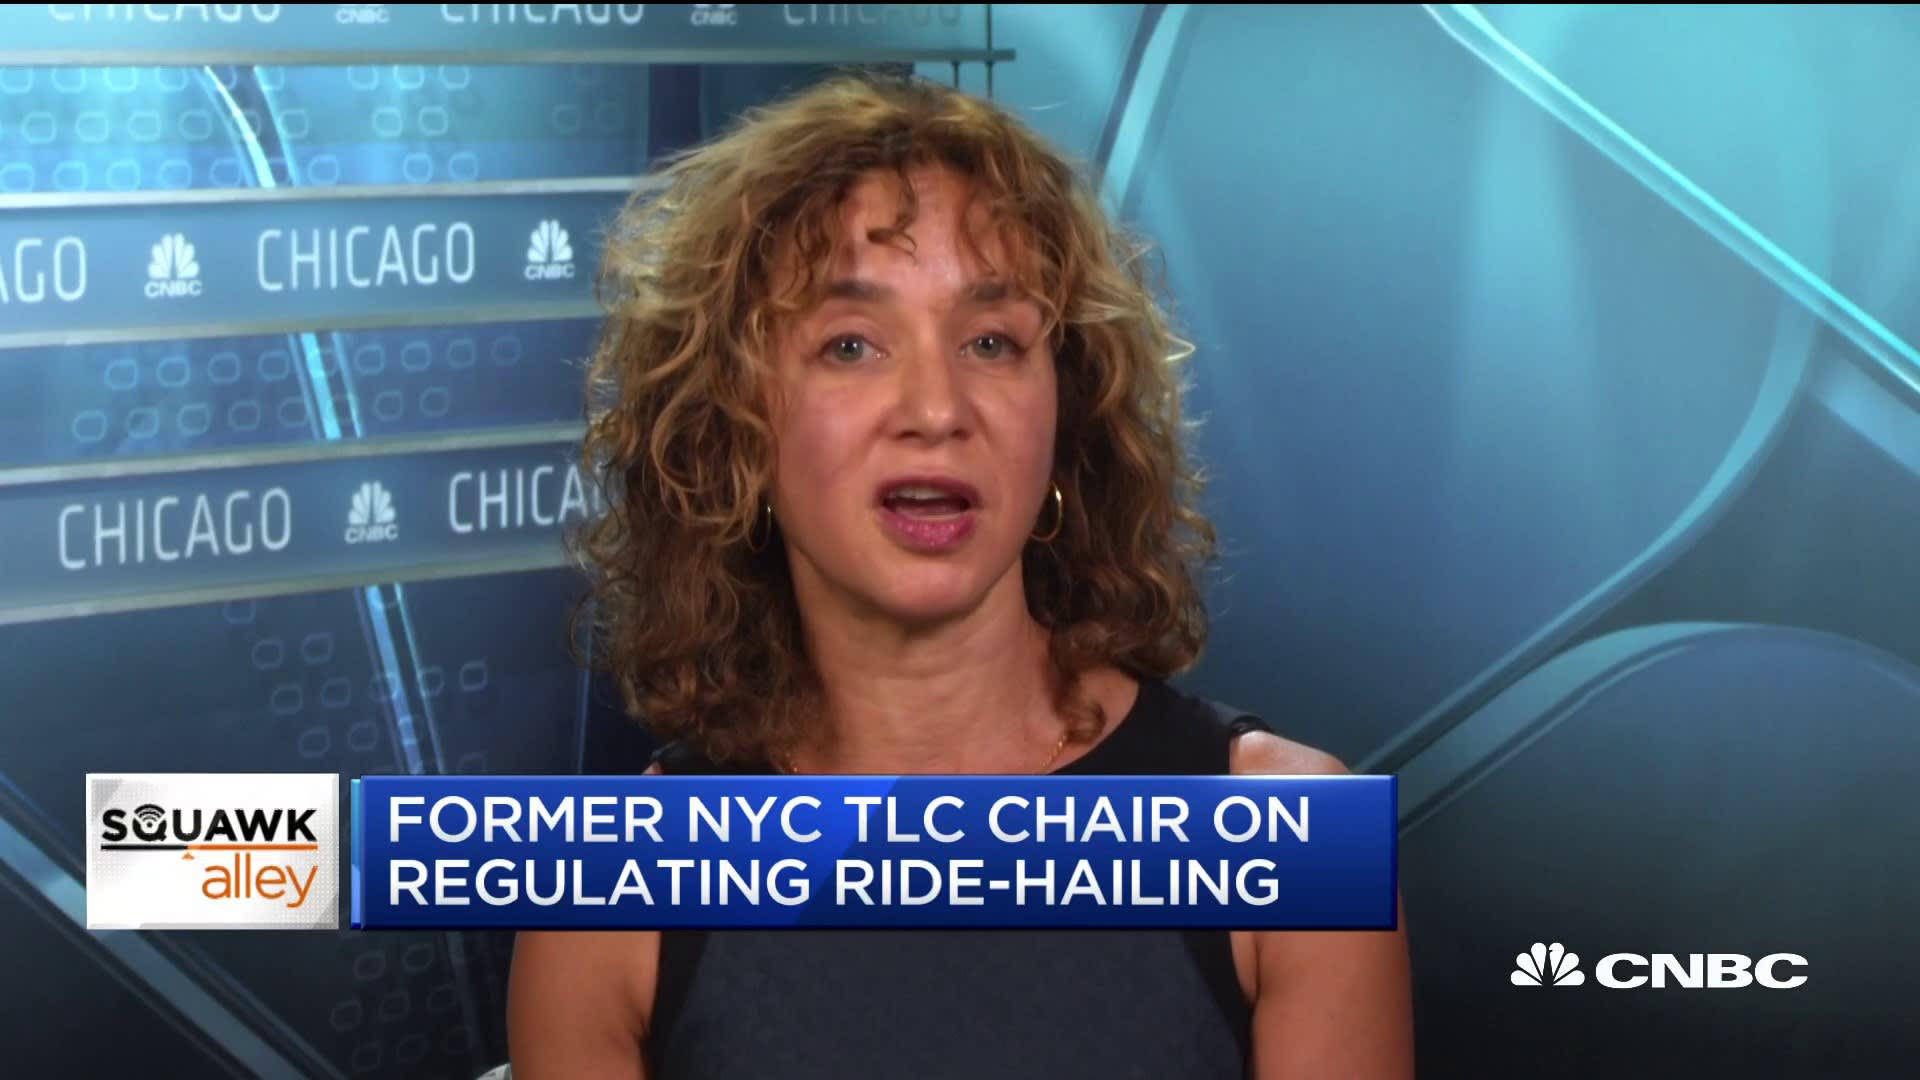 Former NYC TLC chair on regulating ride-hailing services